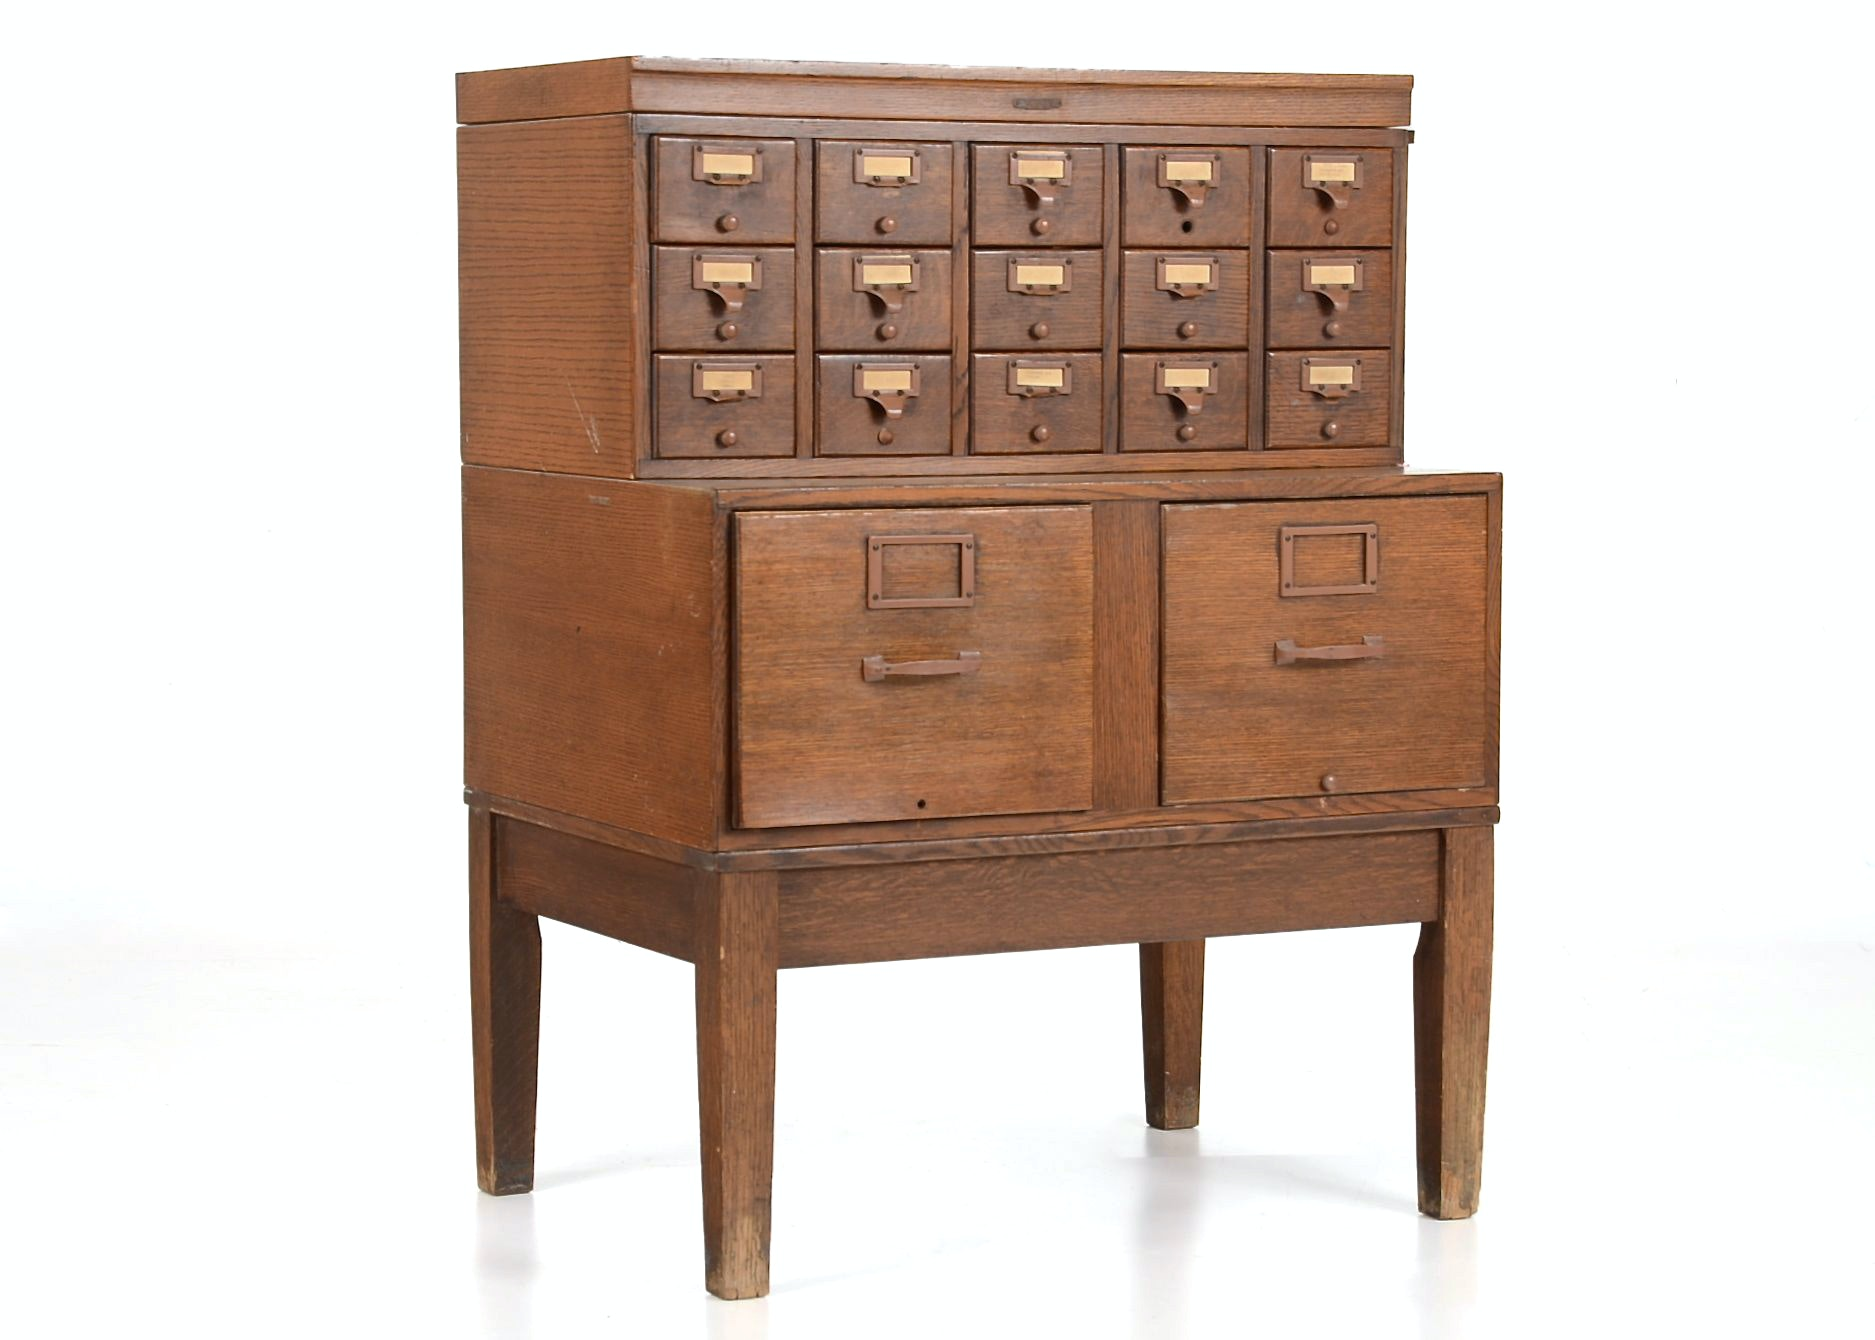 vintage library card catalog ebth rh ebth com  vintage library card cabinet for sale